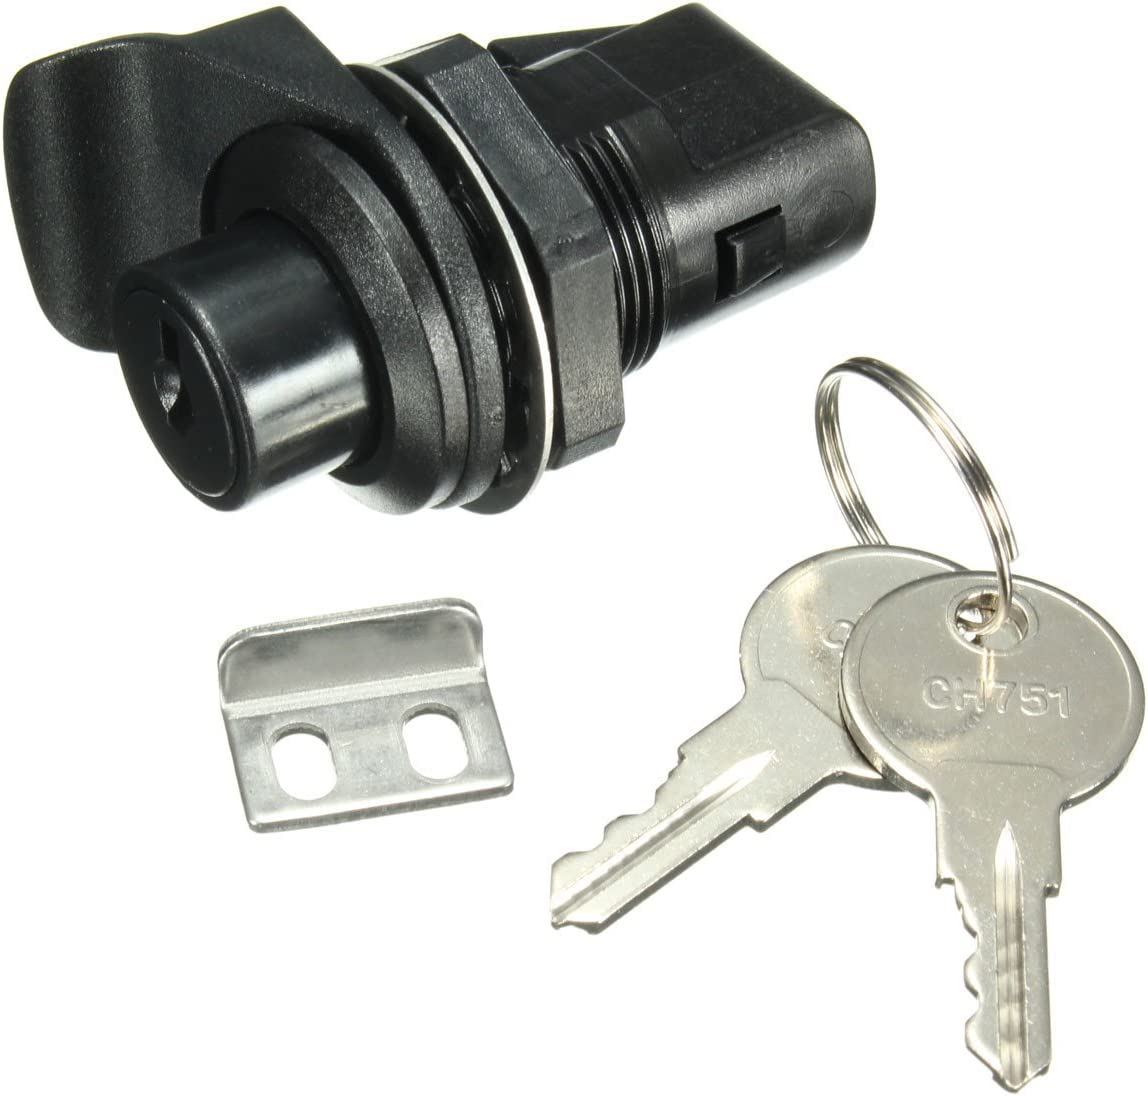 JenNiFer Push Button Latch With Key For Motorcycle Boat Door Gloveboxes Lock